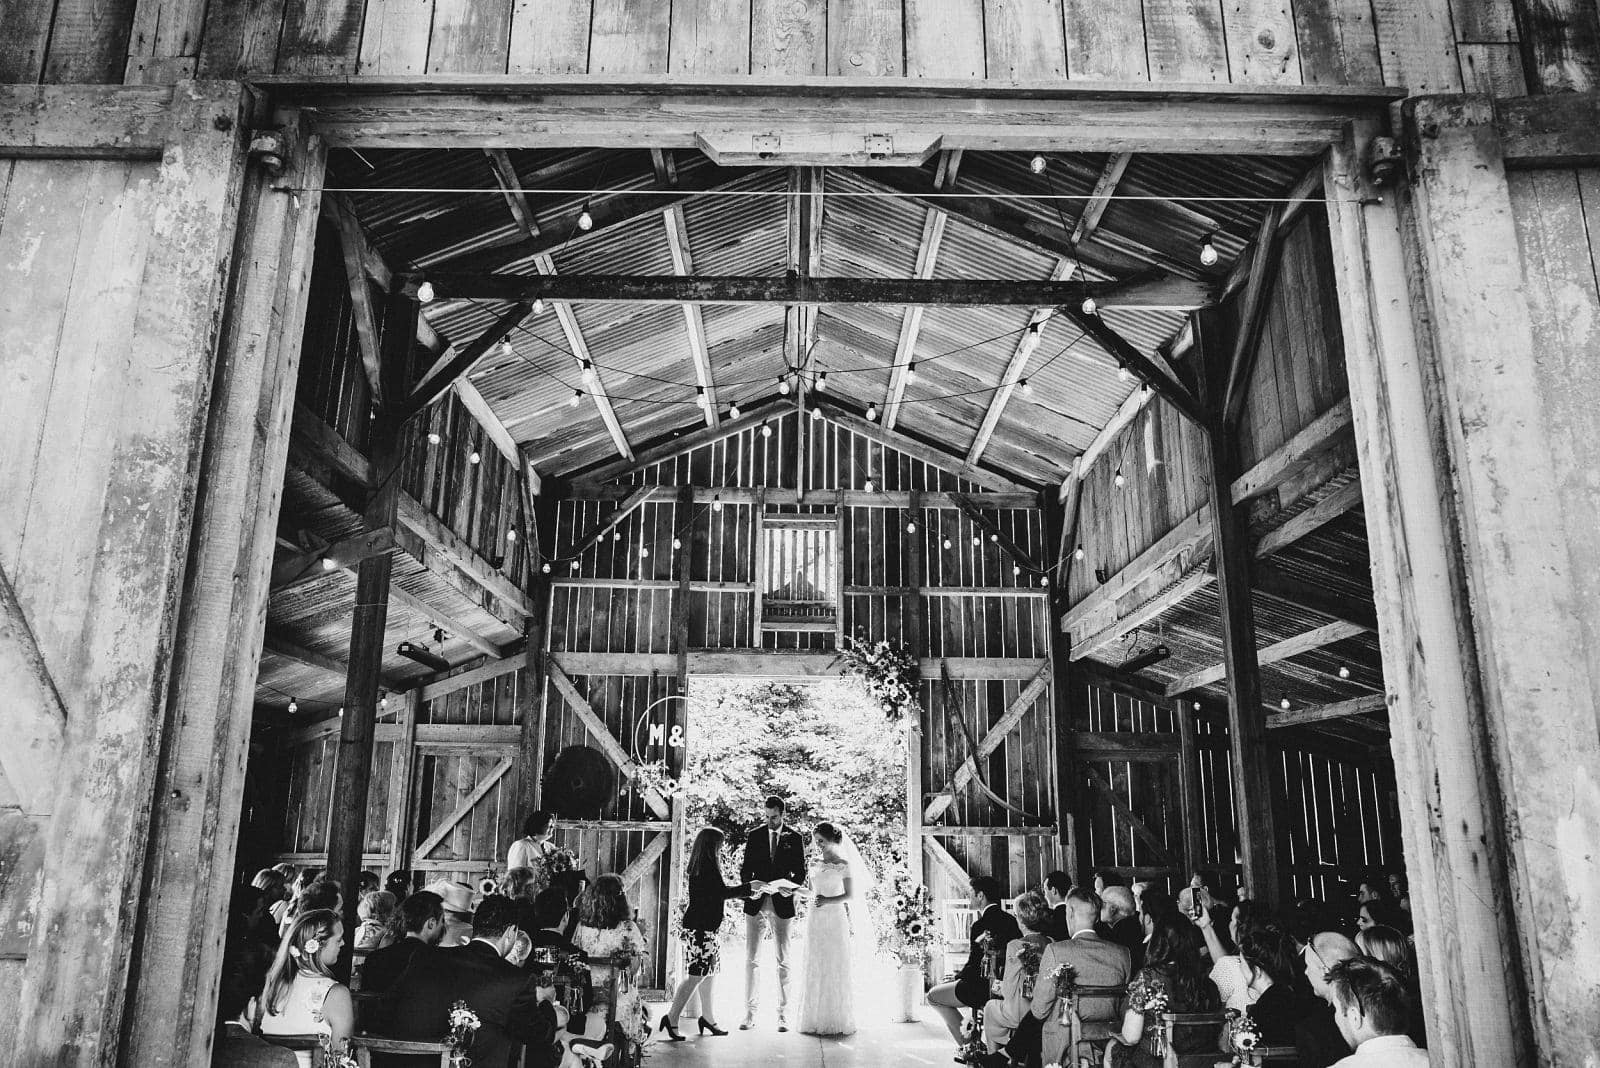 The bride and groom receive their wedding certificate in the Rusty Barn at Nancarrow Farm